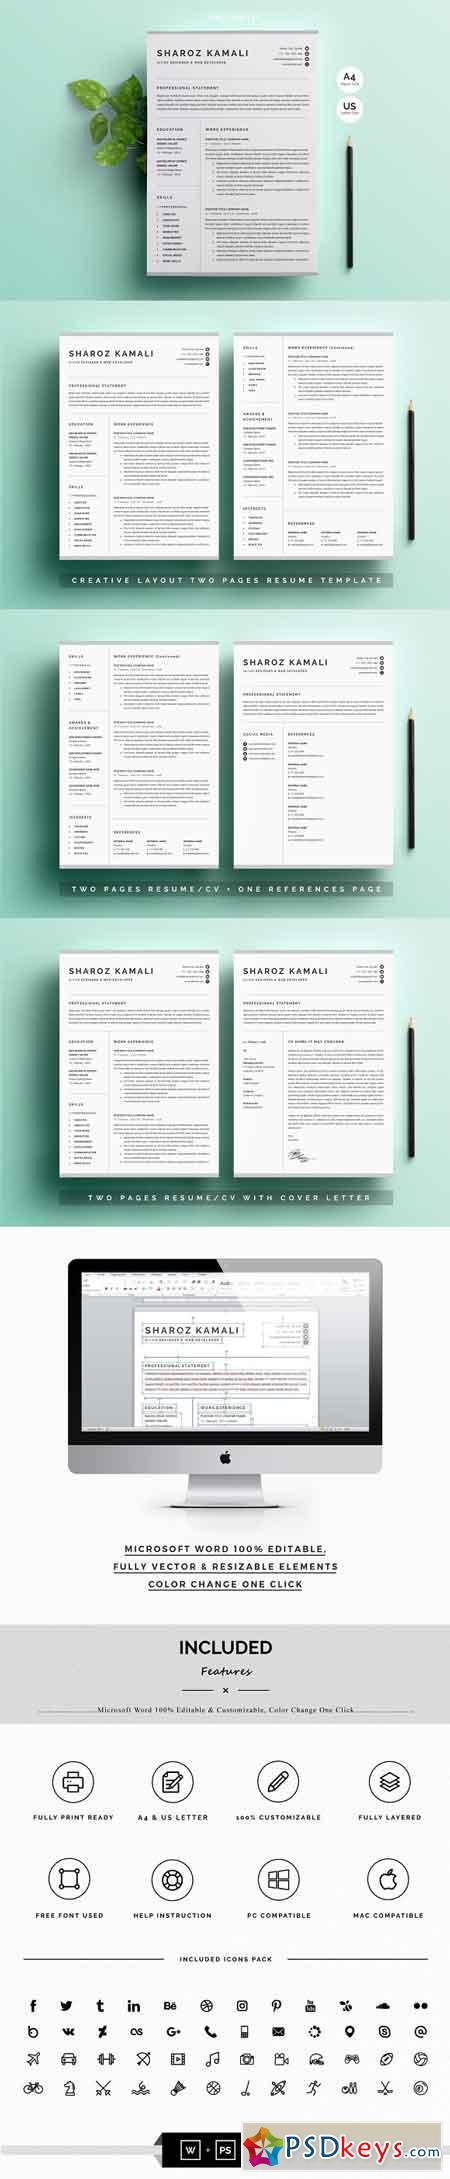 Resume CV Template 4 Pages Pack 2418393